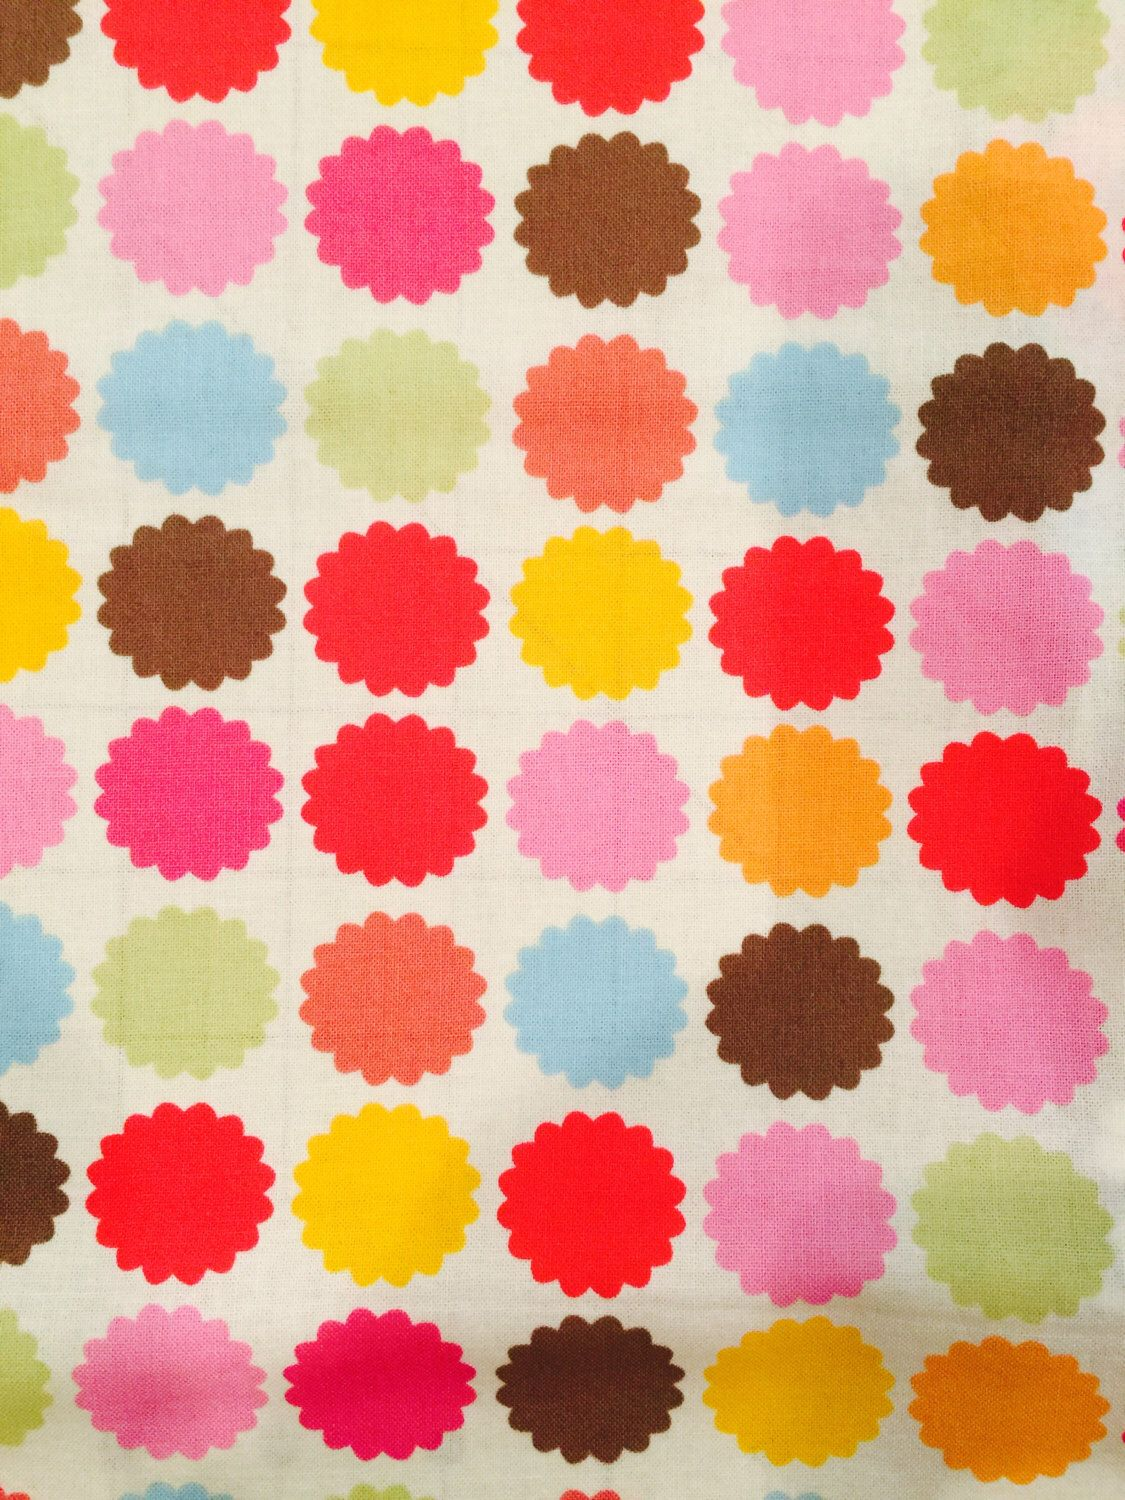 Brother Sister Design Studio Fabric Multi Color Dot Print Fabric